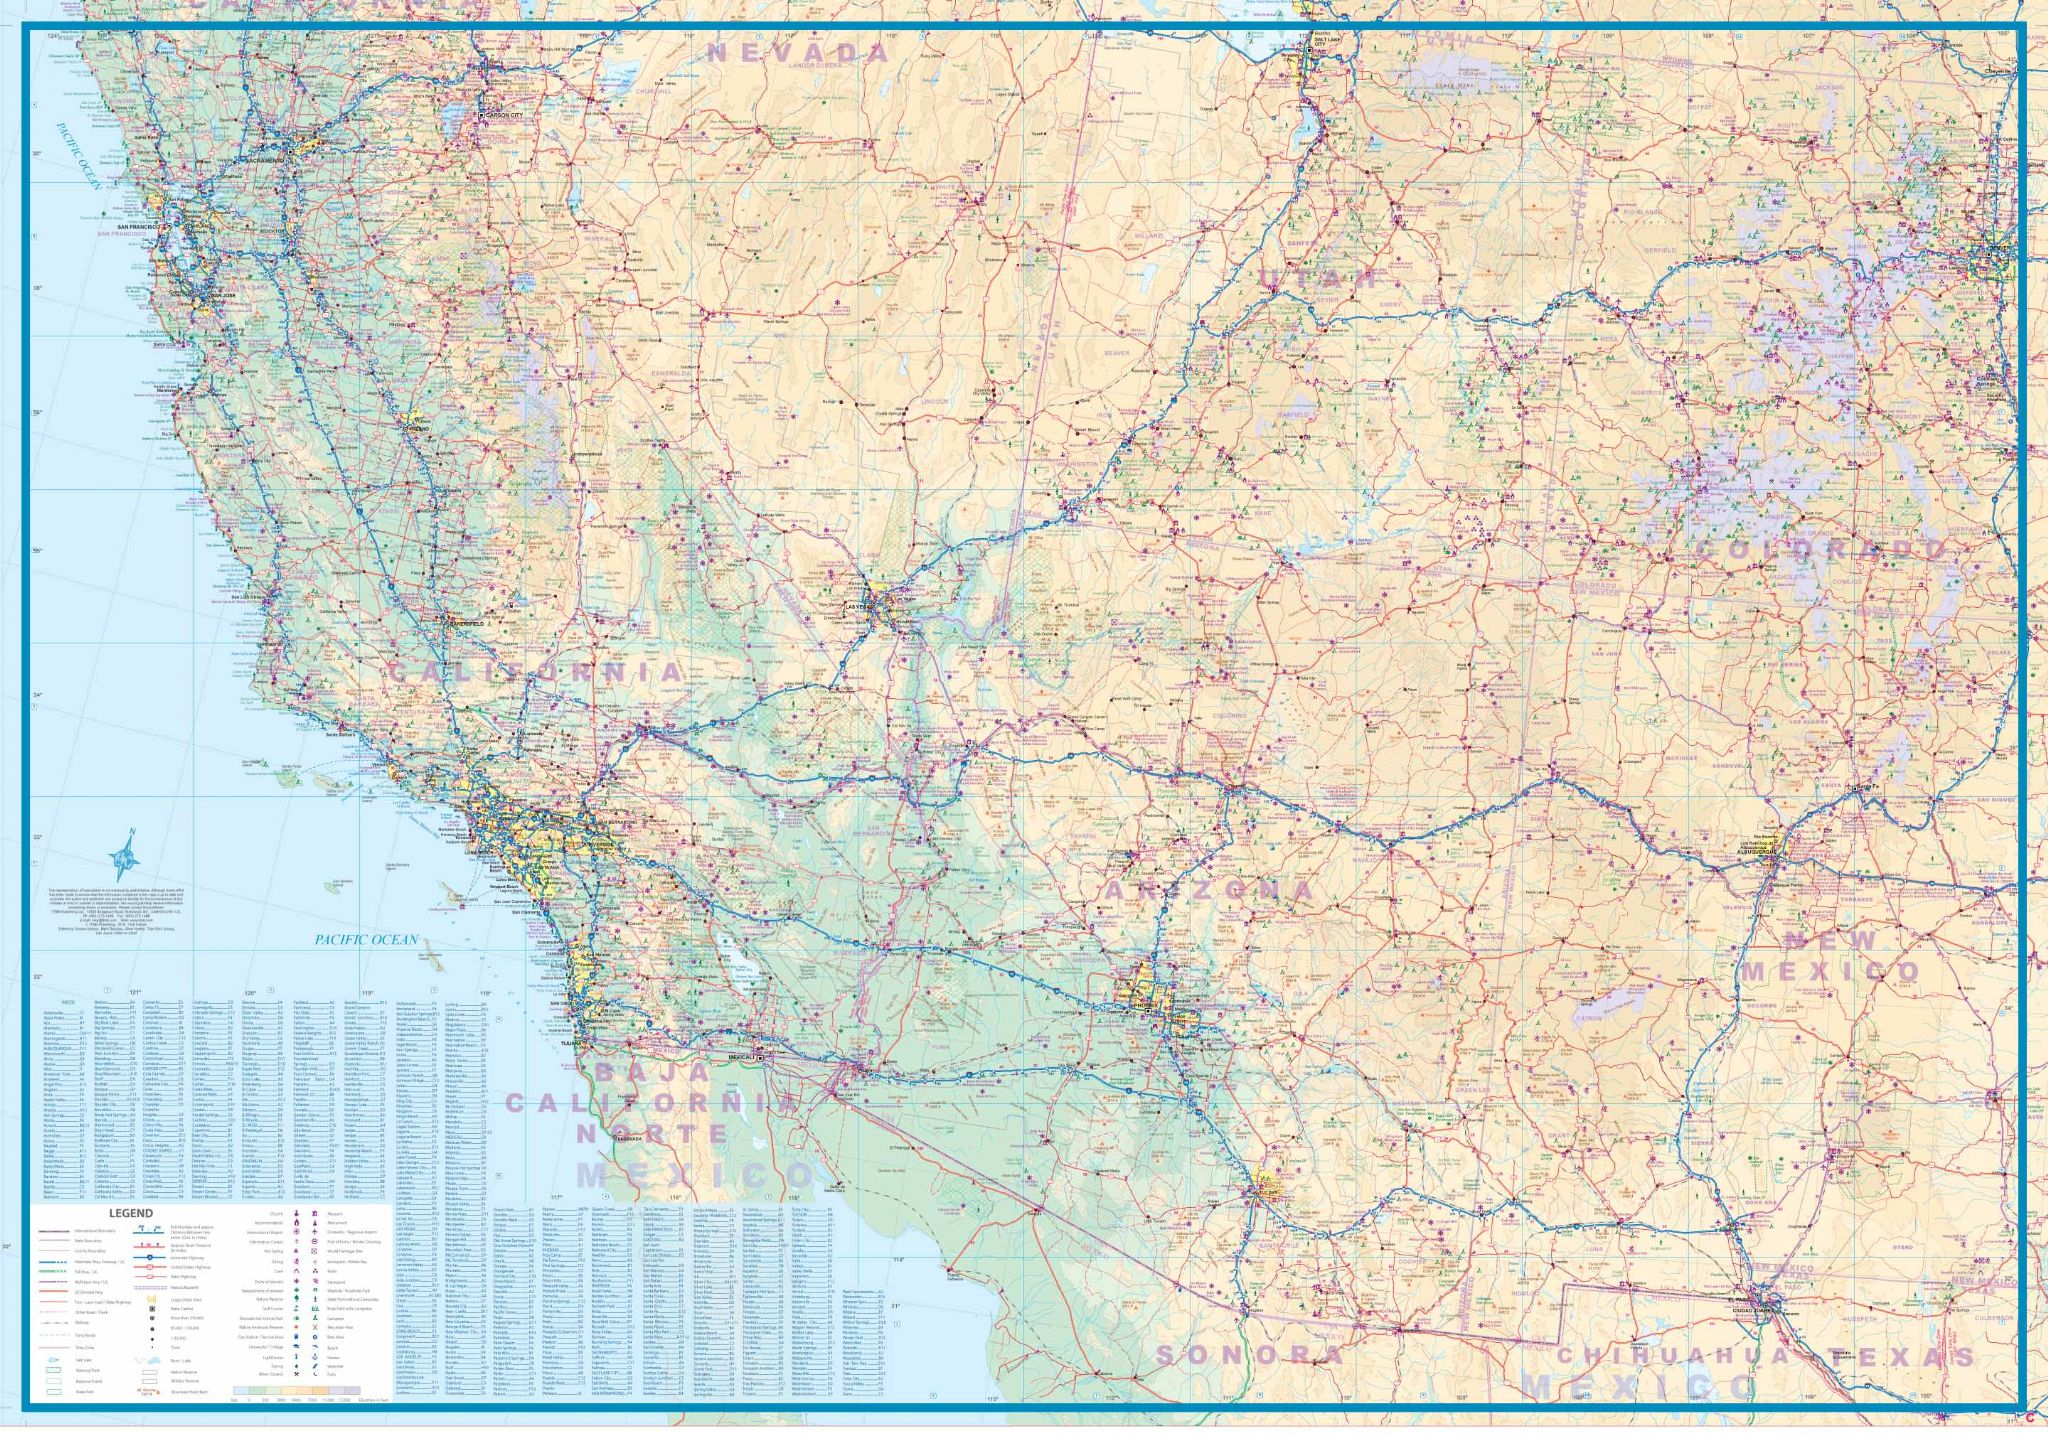 4. USA West Half Railroads and Highways Travel Reference map